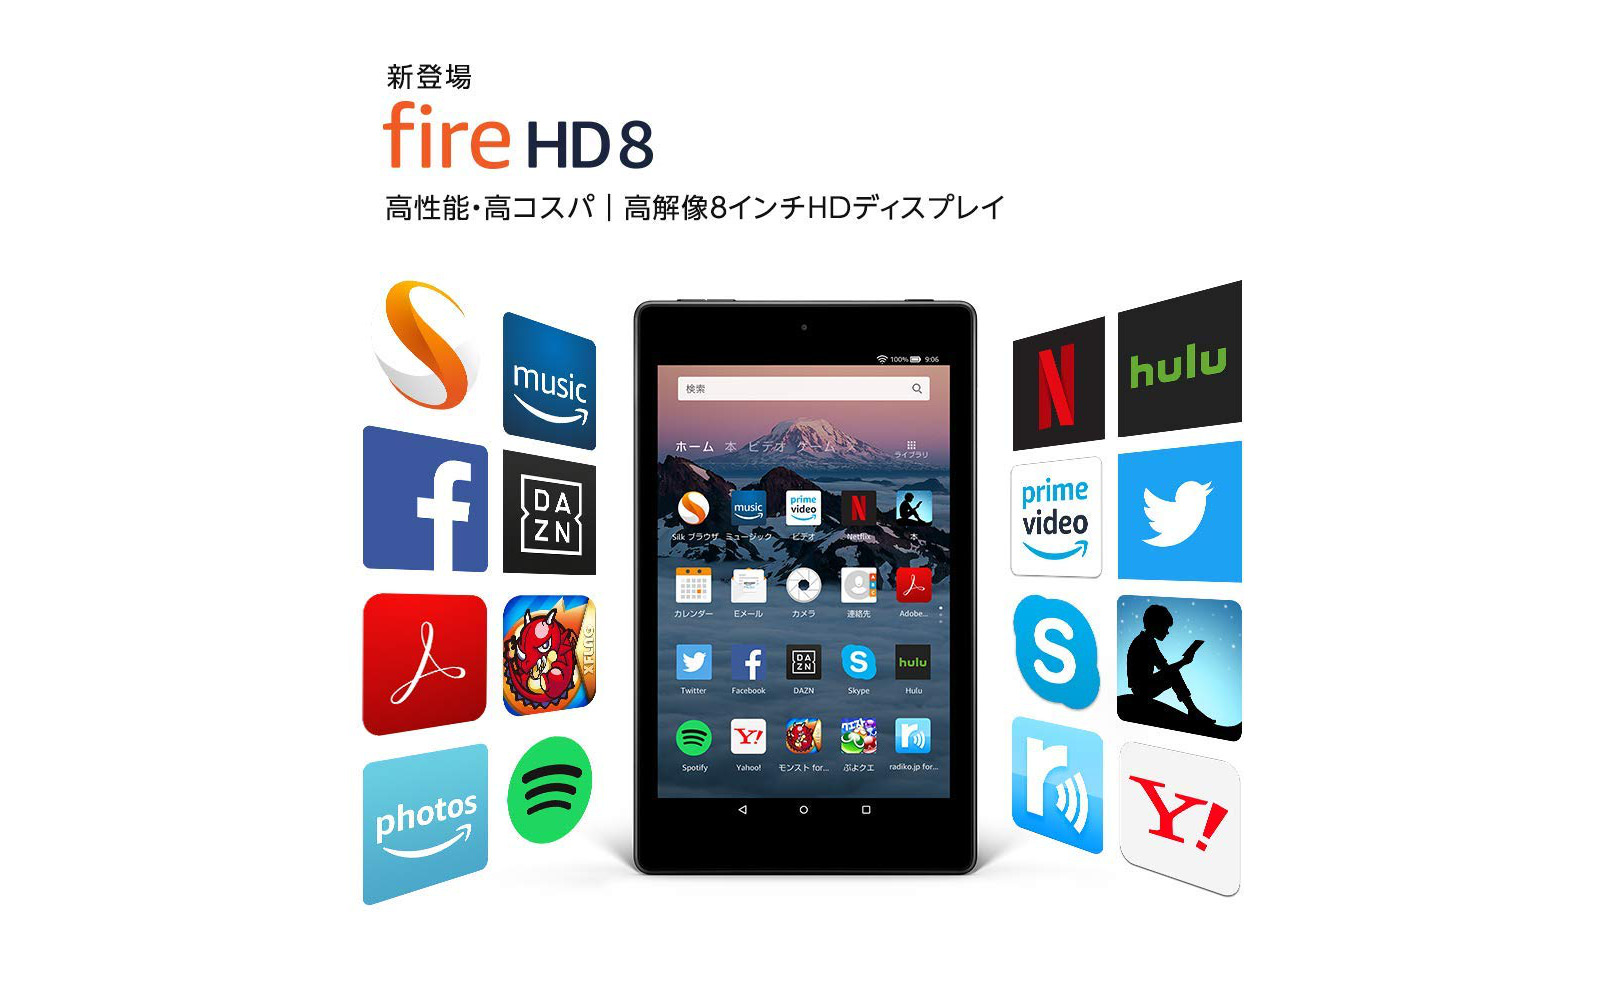 New Fire HD 8 tablet